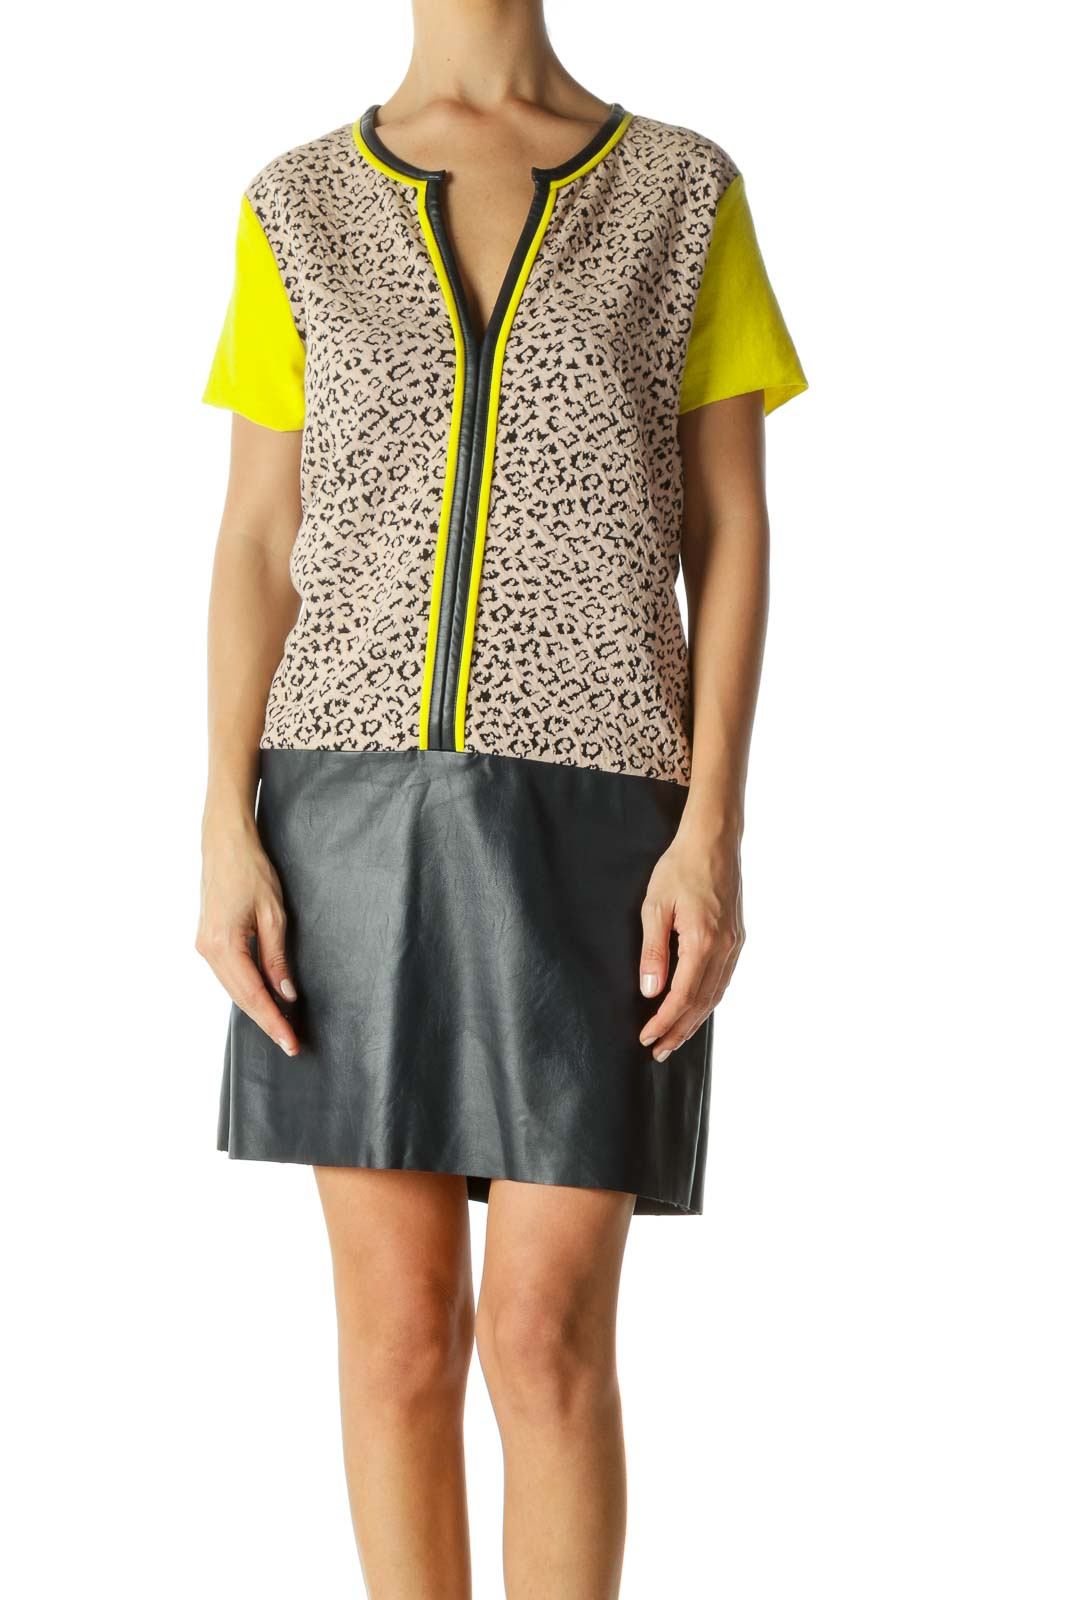 Beige Black Yellow Animal Textured Knit Contrasting Piping Mixed-Media Dress Front